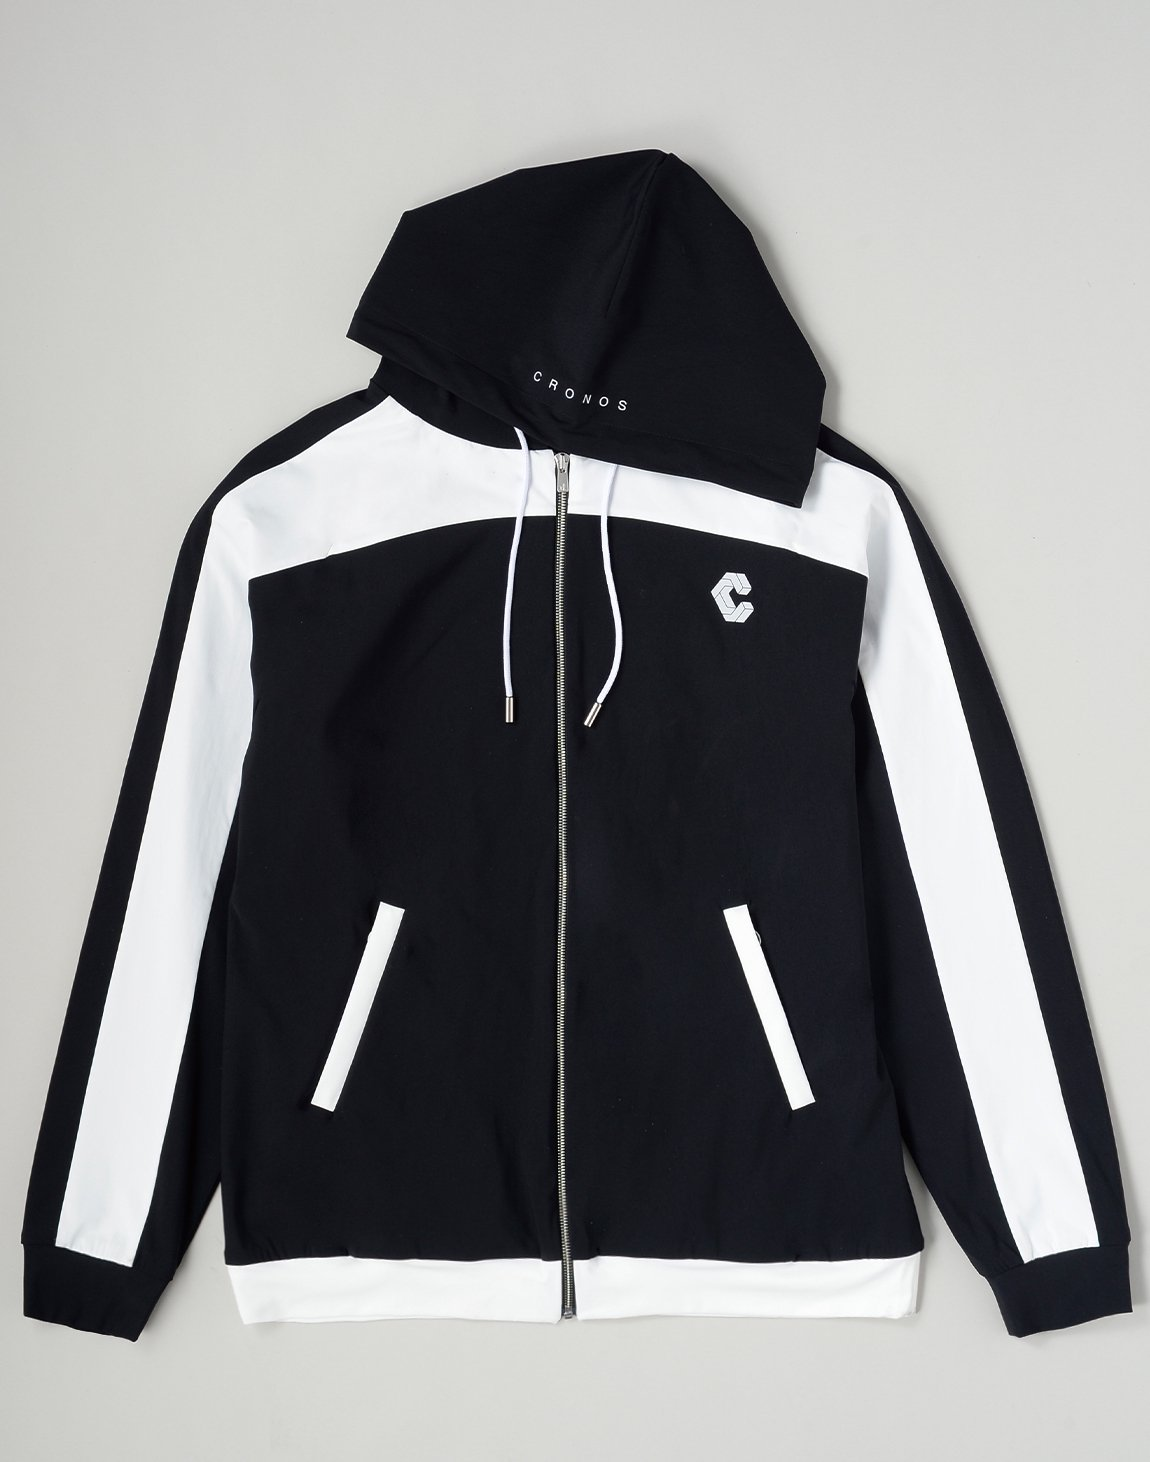 <img class='new_mark_img1' src='https://img.shop-pro.jp/img/new/icons1.gif' style='border:none;display:inline;margin:0px;padding:0px;width:auto;' />CRONOS HOODED BLOUSON【BLACK】